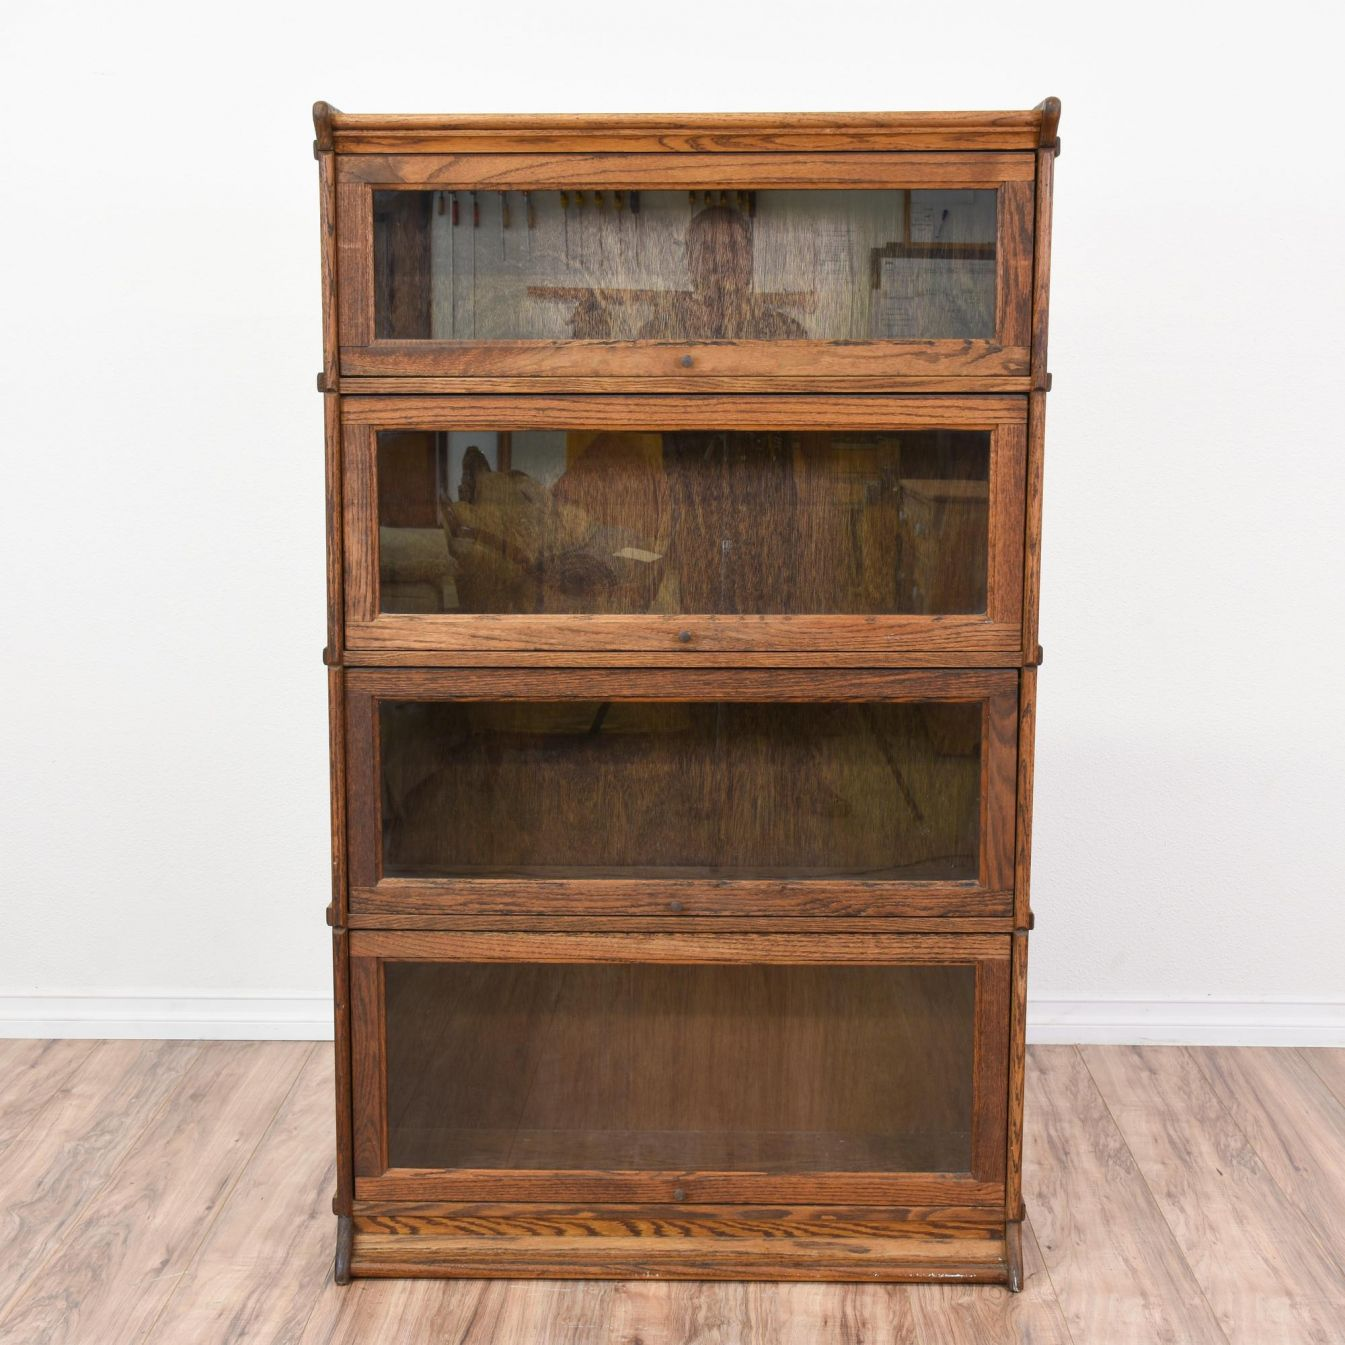 100 Antique Oak Bookcase With Glass Doors Luxury Modern Furniture